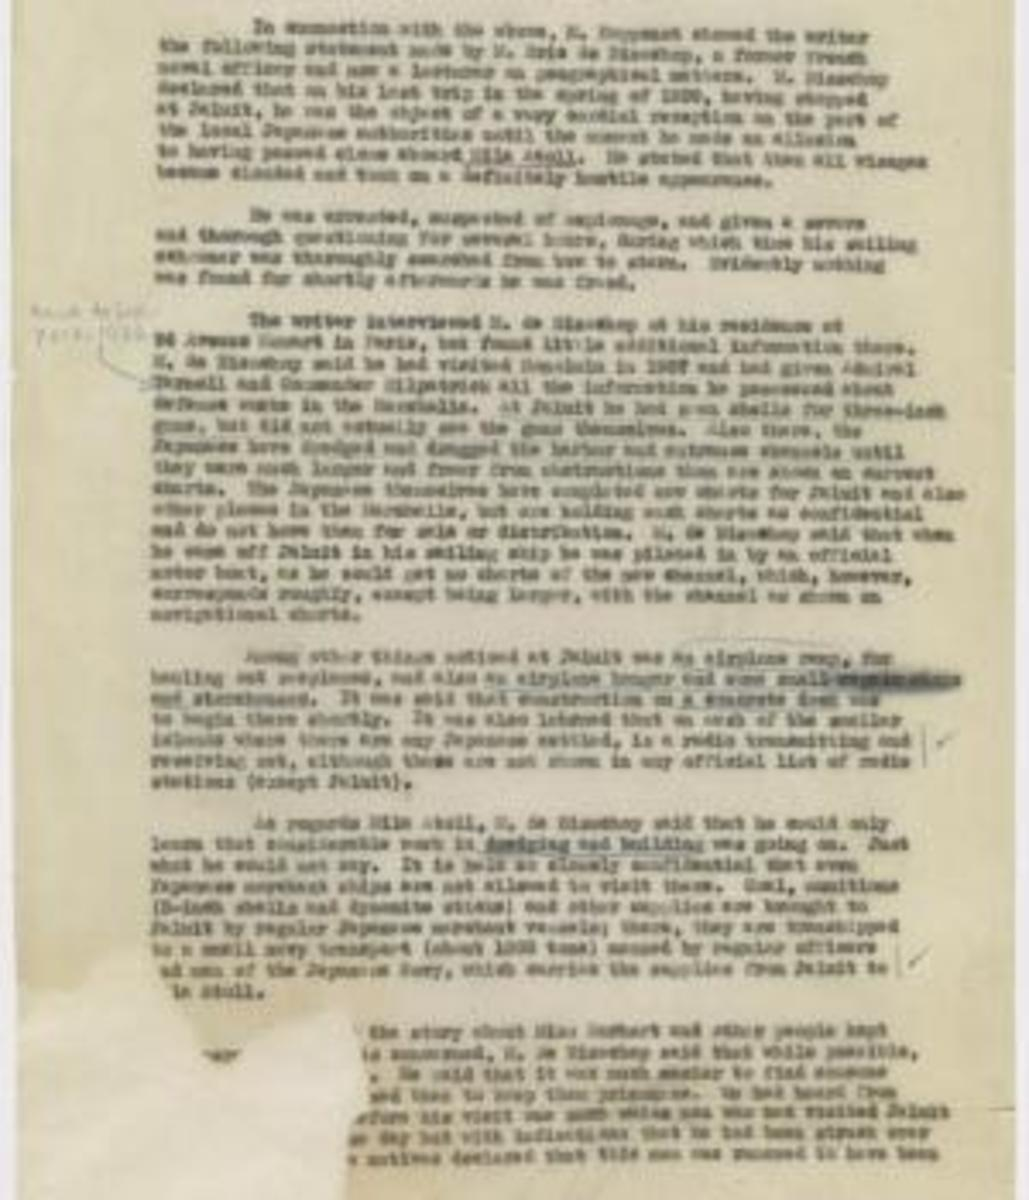 Page 2 of report, dated January 7, 1939, from the records of the Office of the Chief of Naval Operations. This document provides information that Earhart was a prisoner in the Marshall Islands. (Credit: National Archives)